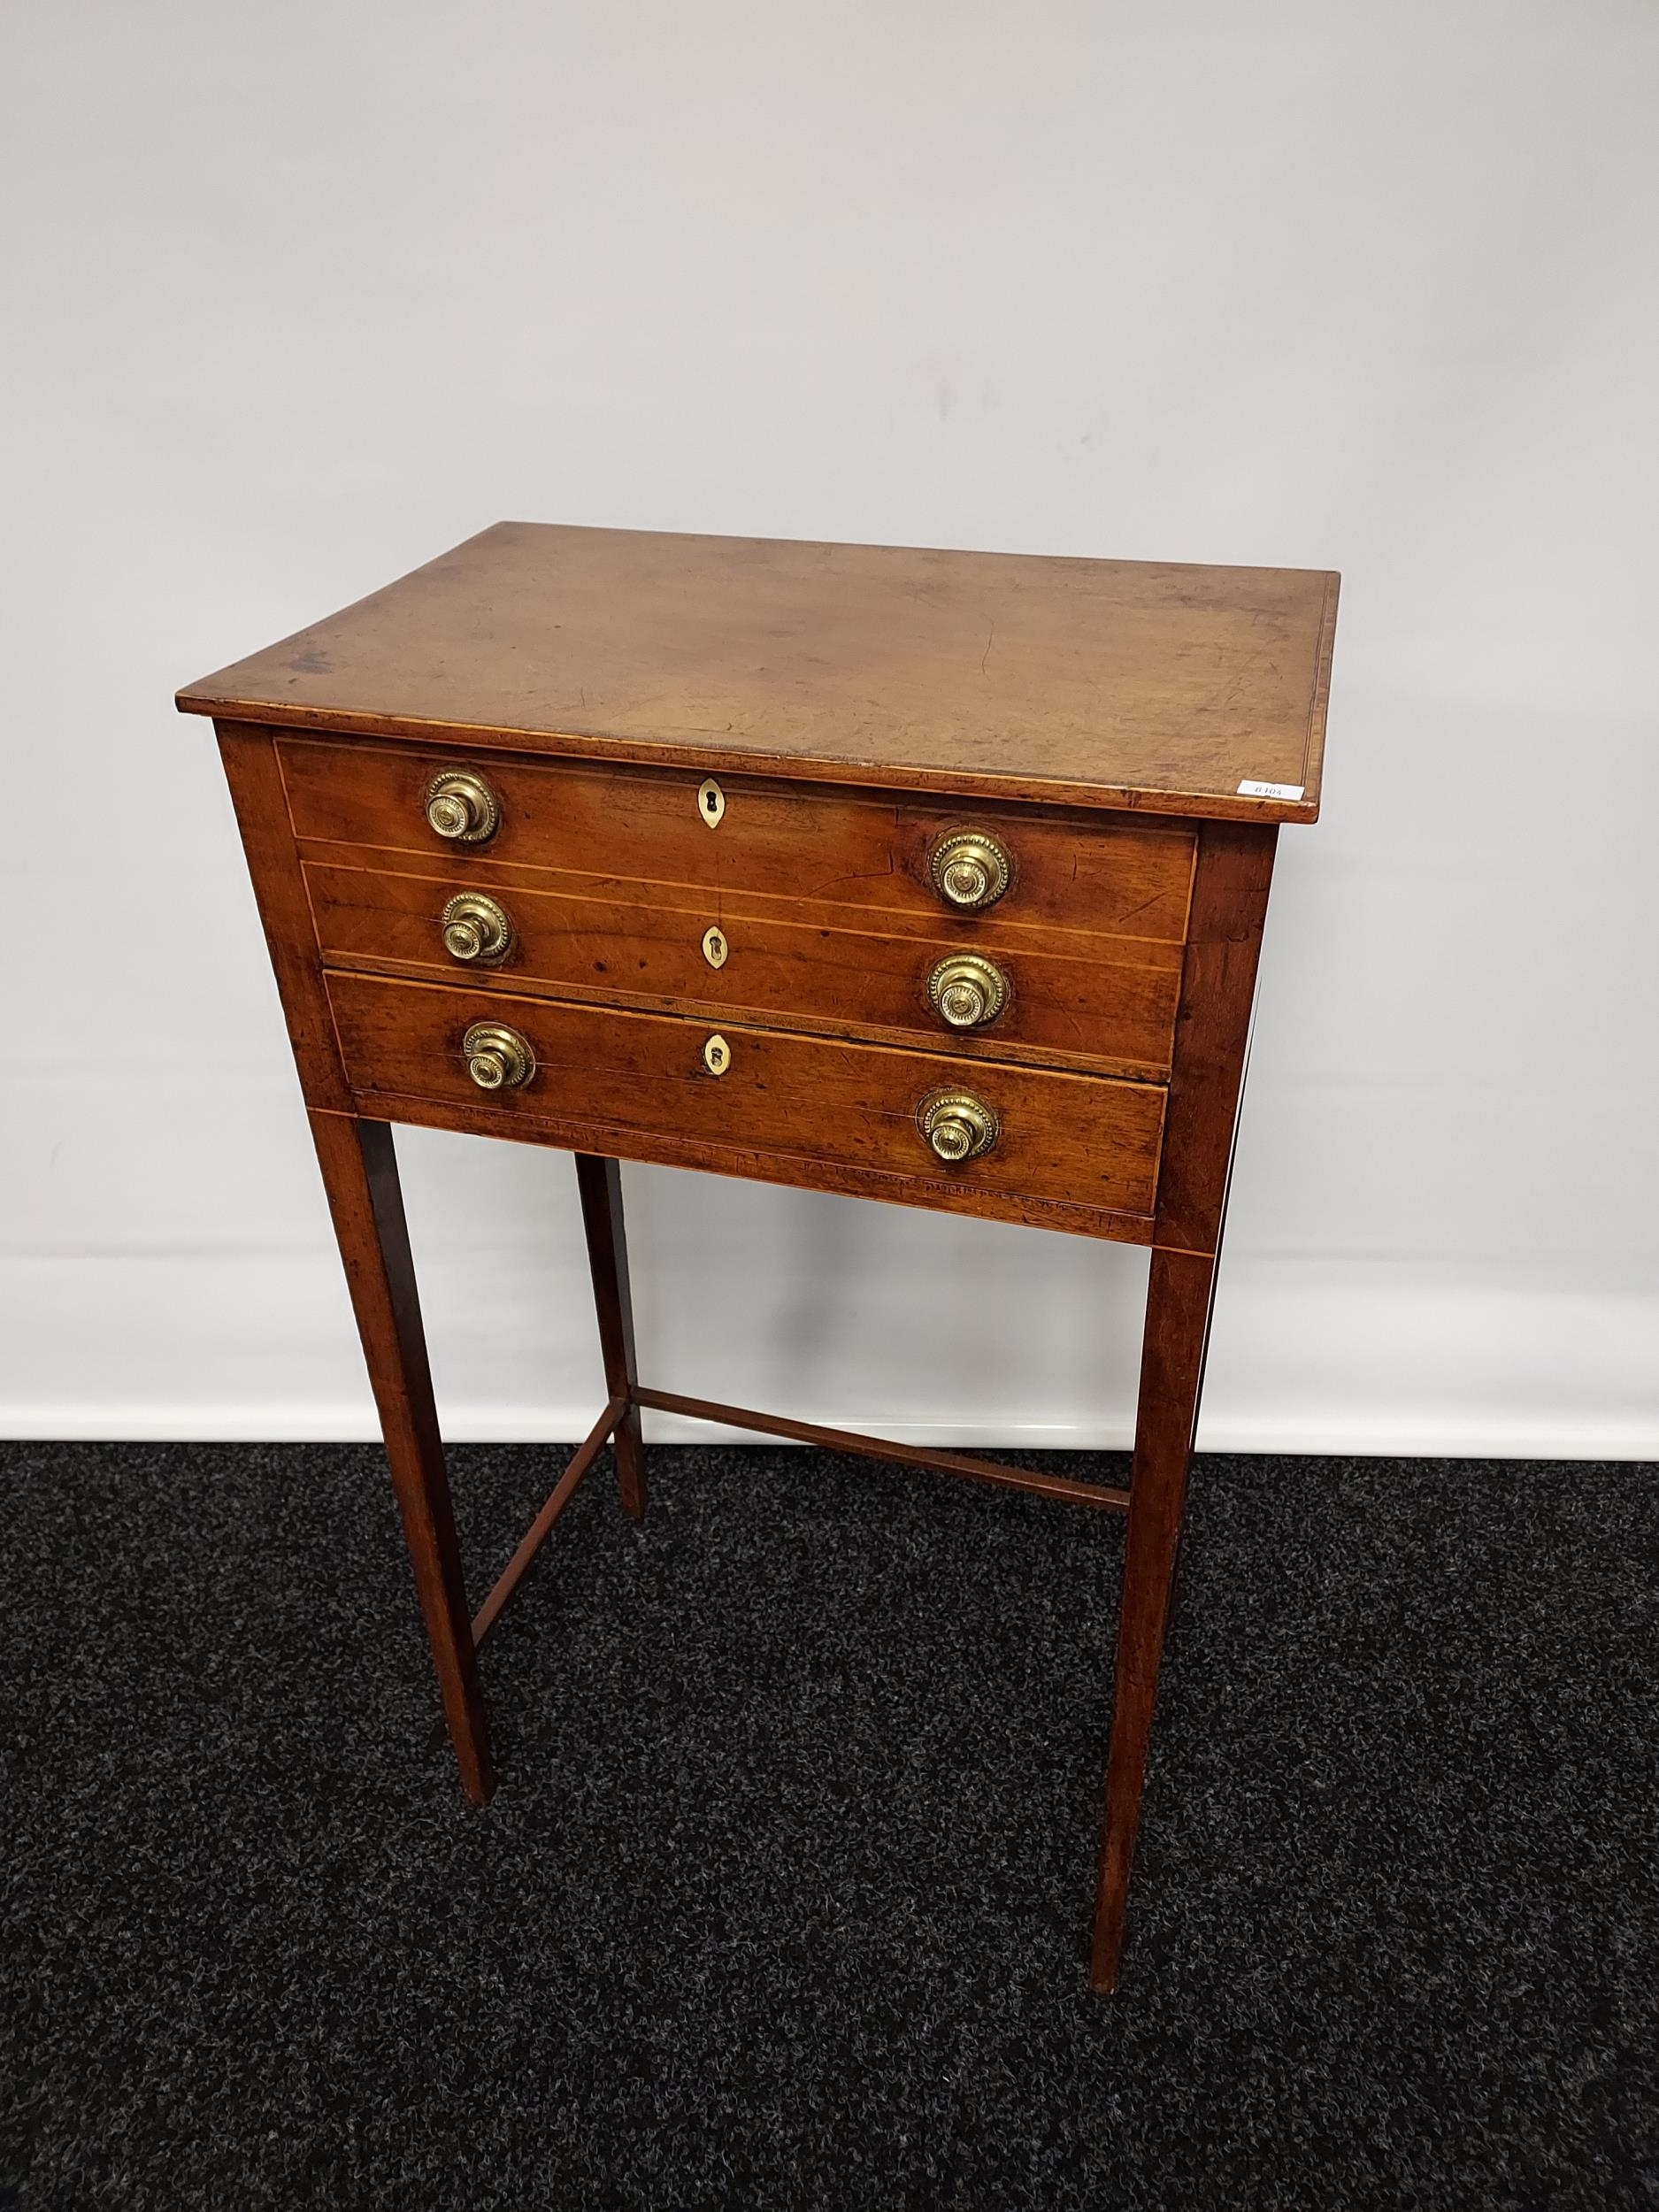 Georgian mahogany lift top console table, one centre drawer under two false drawers, raised on